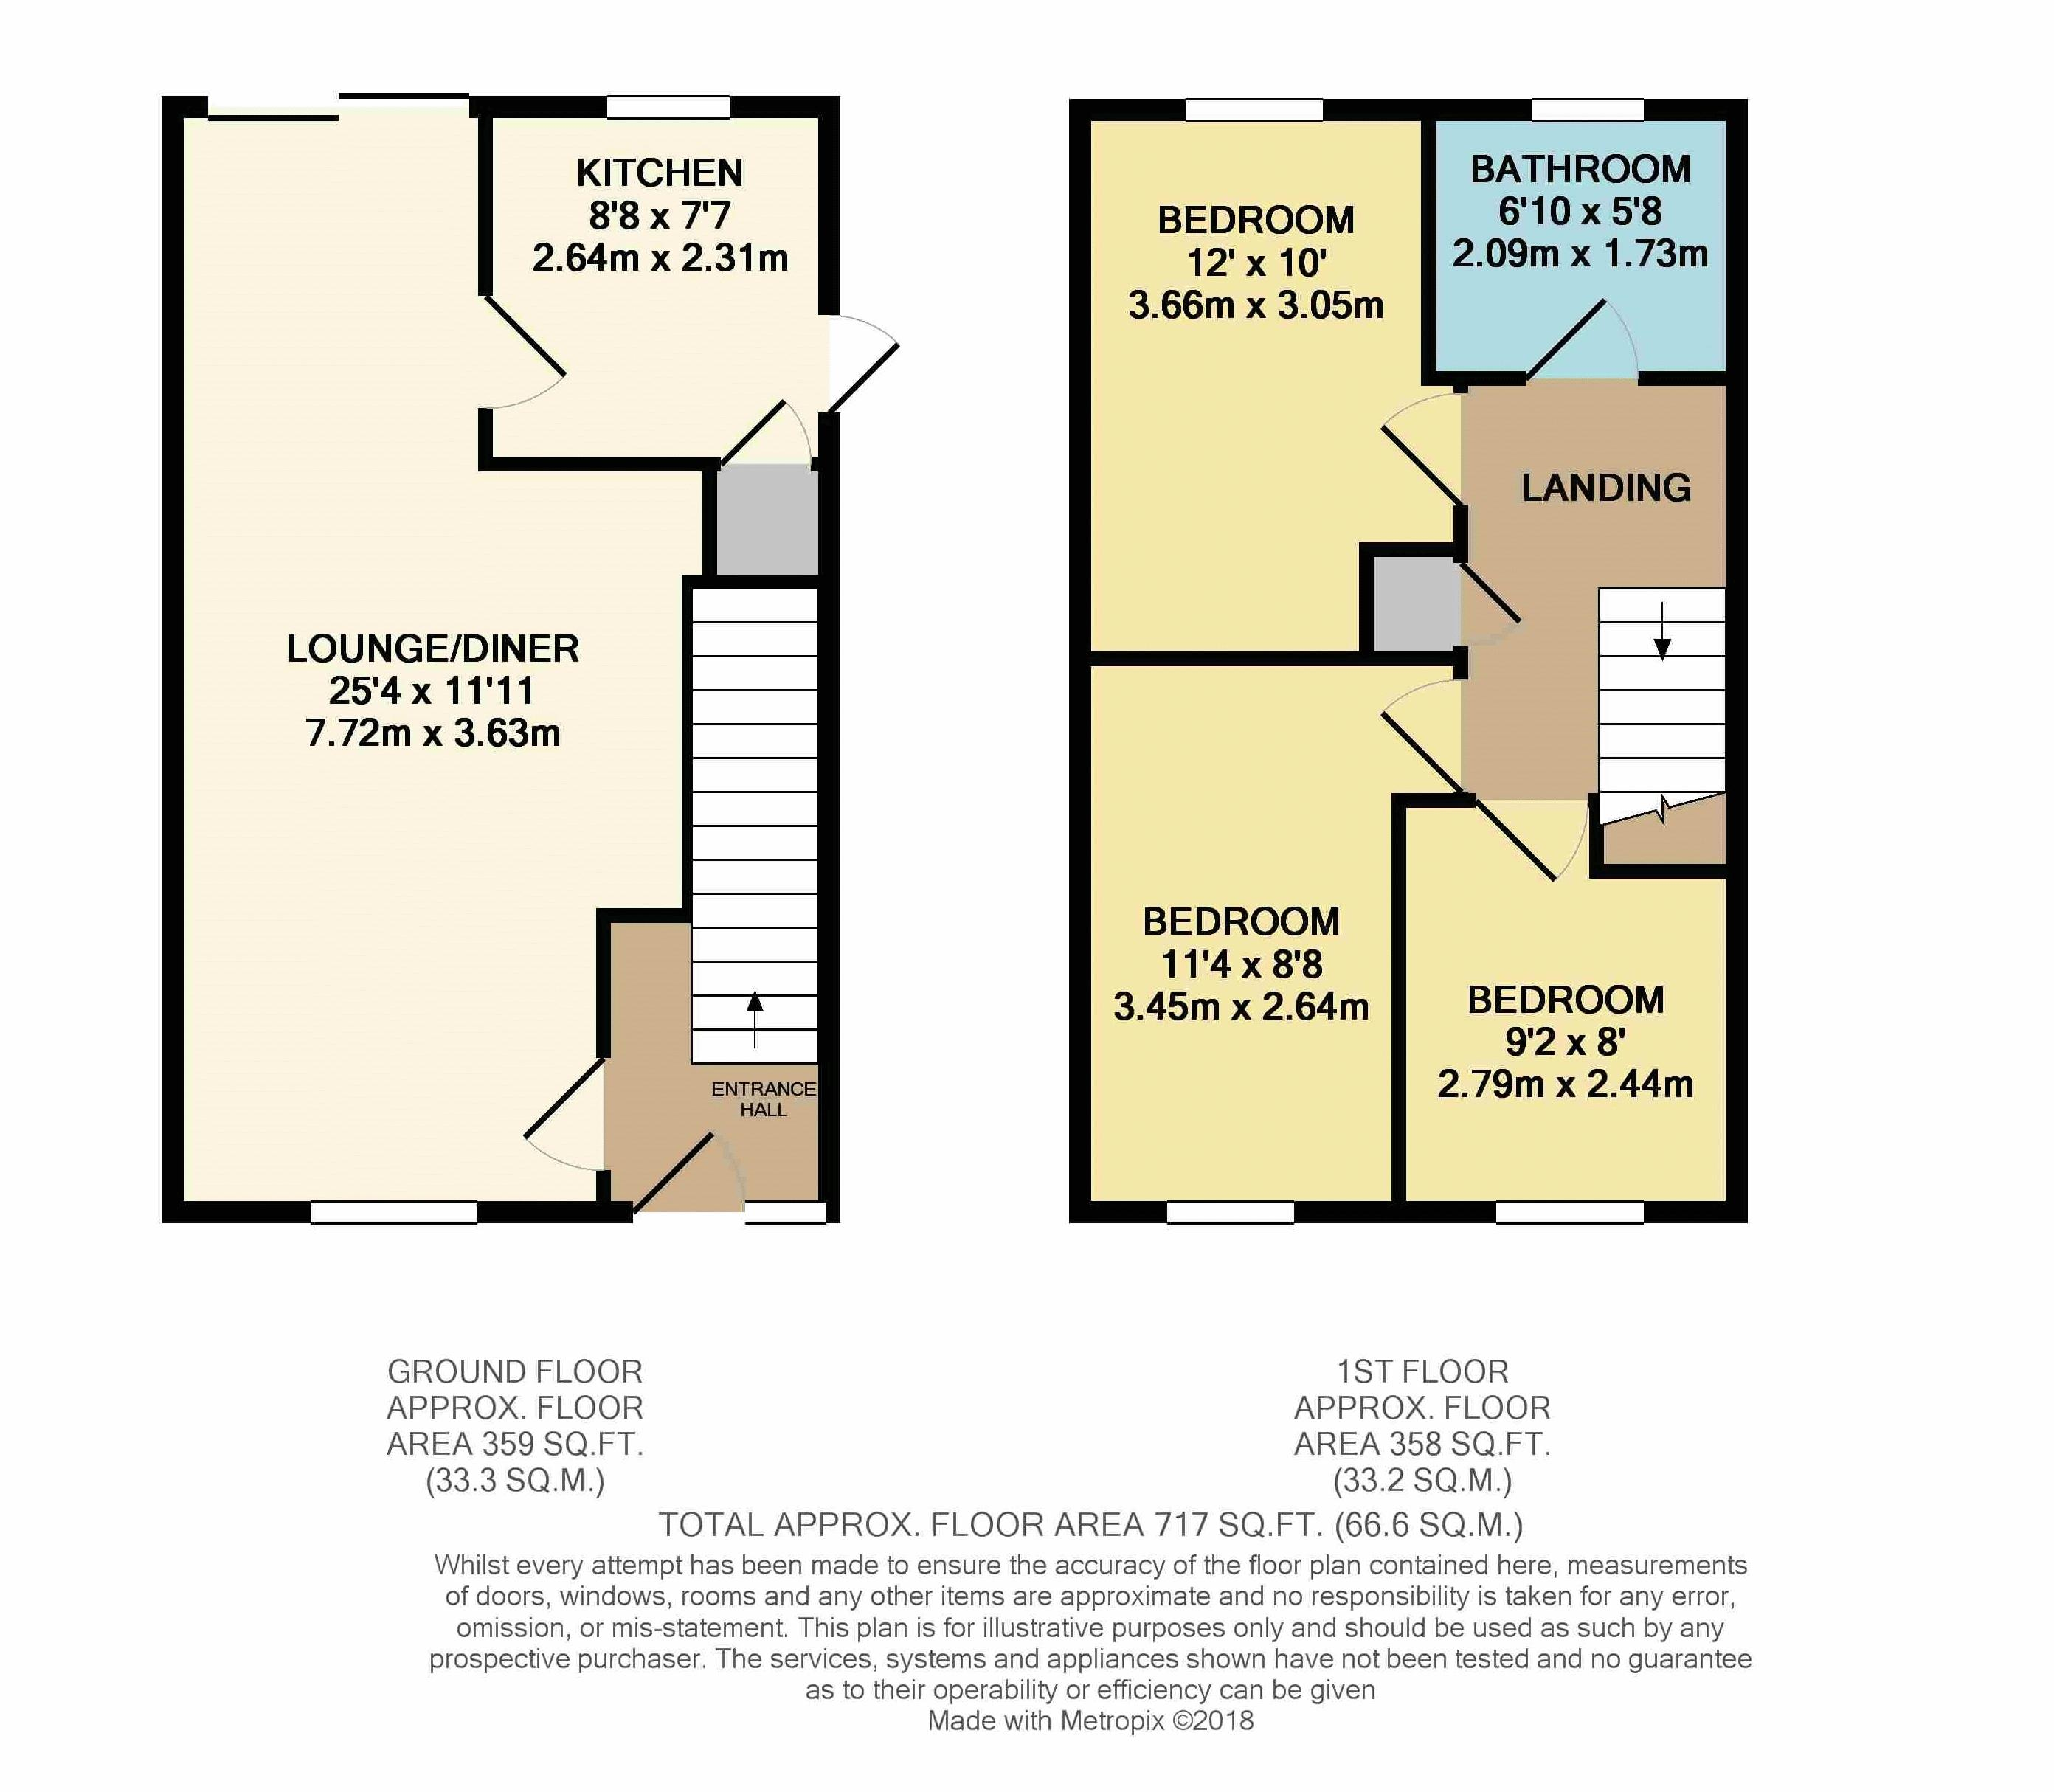 3 bedroom house for sale in luton for How much is a bedroom worth in an appraisal